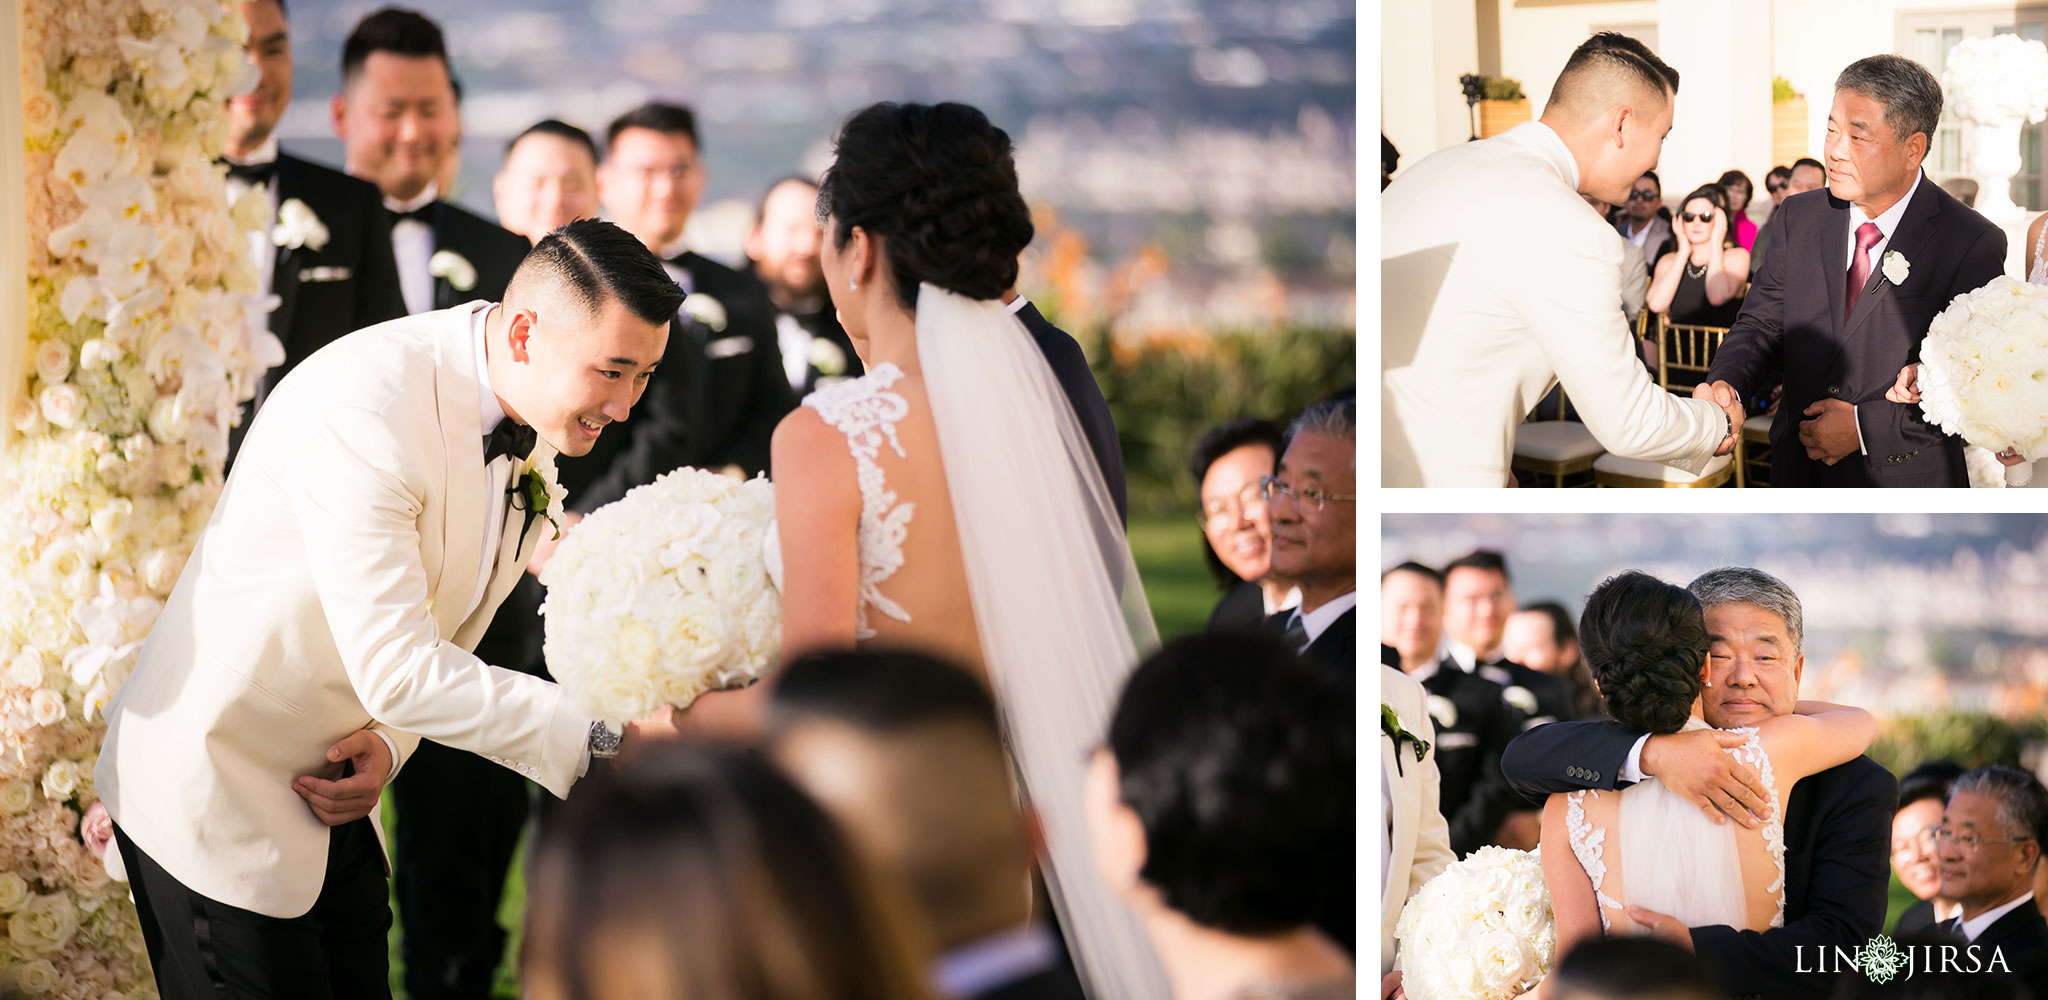 19 ritz carlton laguna niguel wedding ceremony photography